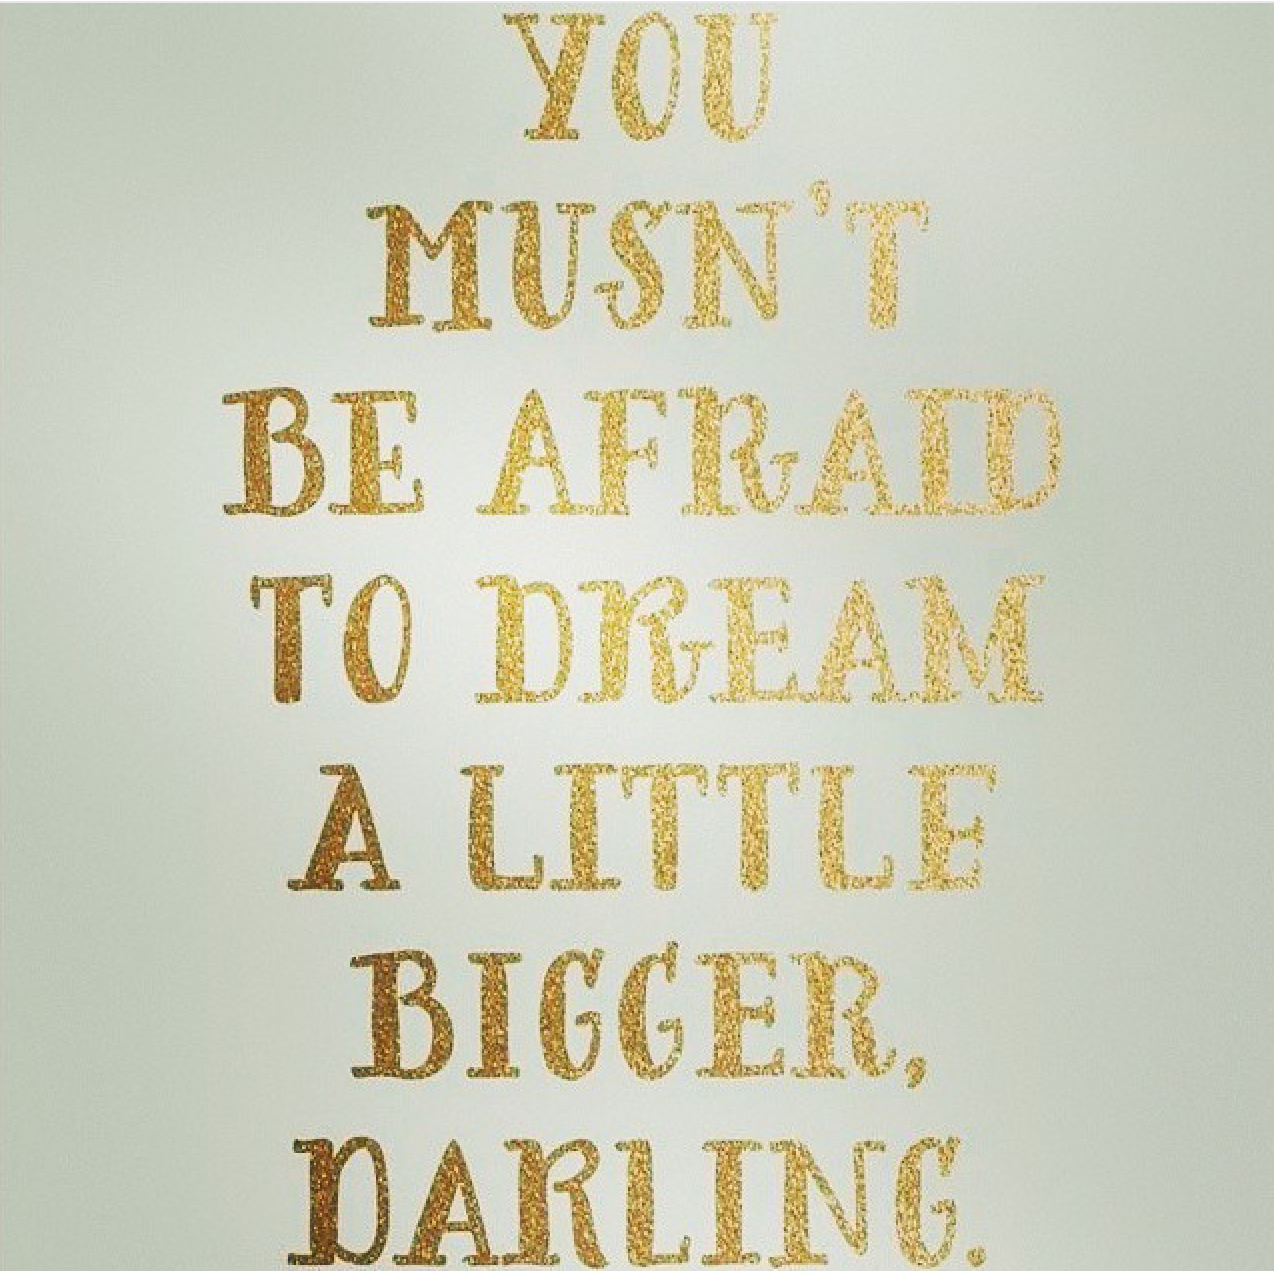 You mustn't be afraid to dream a little bigger, darling